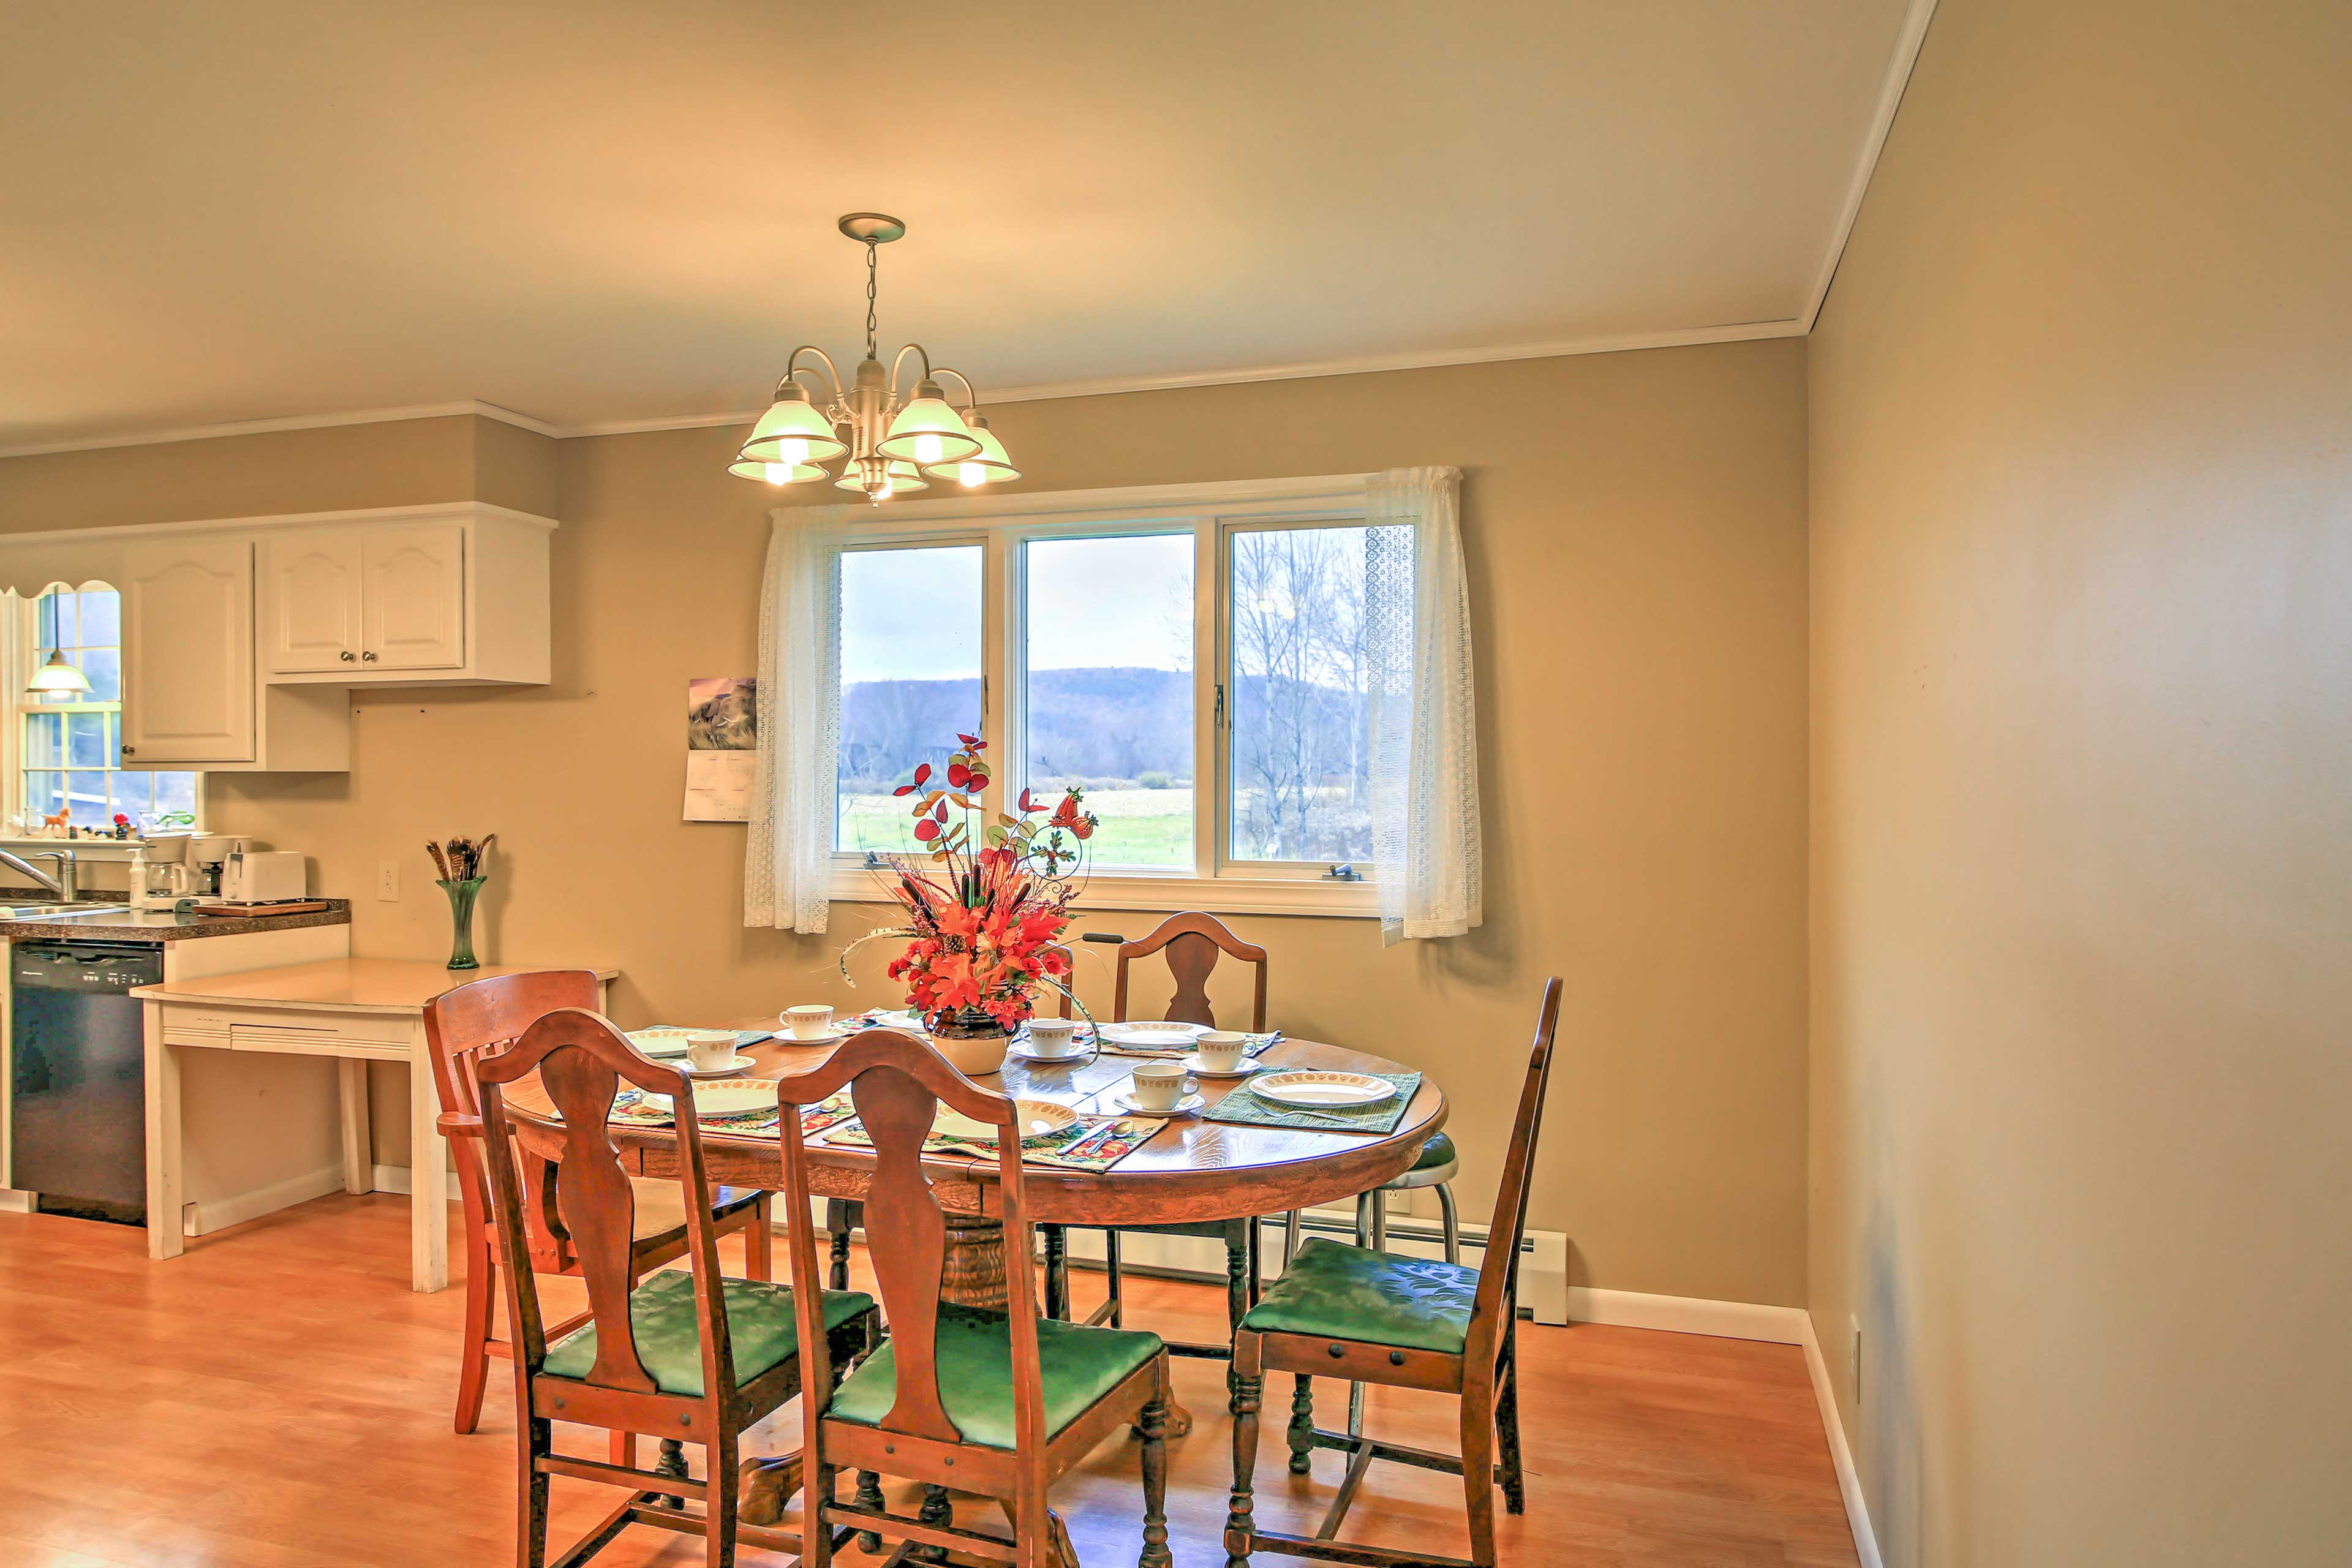 Gather around the dining table to savor tasty home-cooked meals.